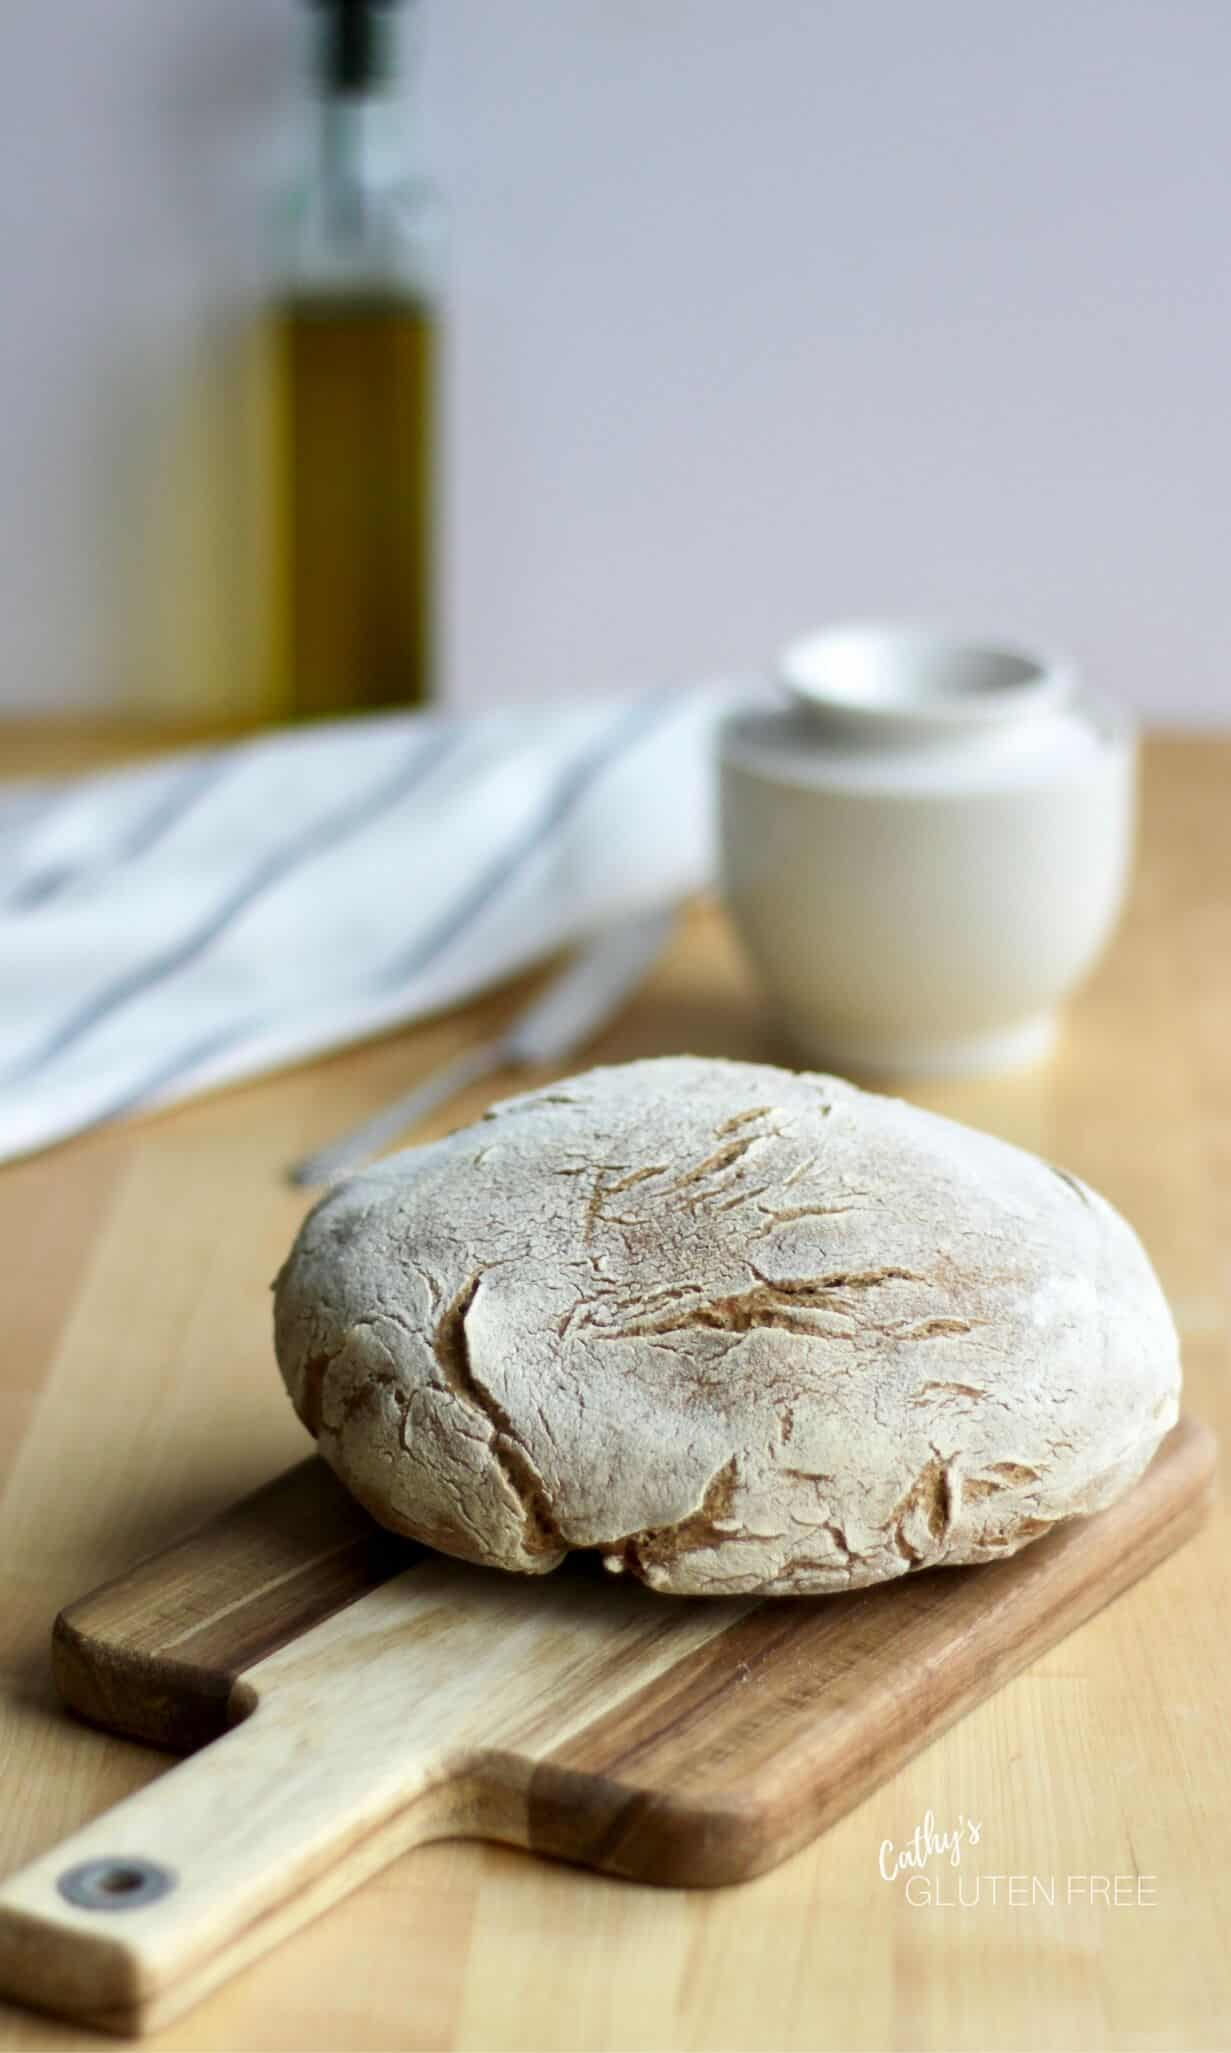 Gluten Free Crusty Bread Recipe | CathysGlutenFree.com